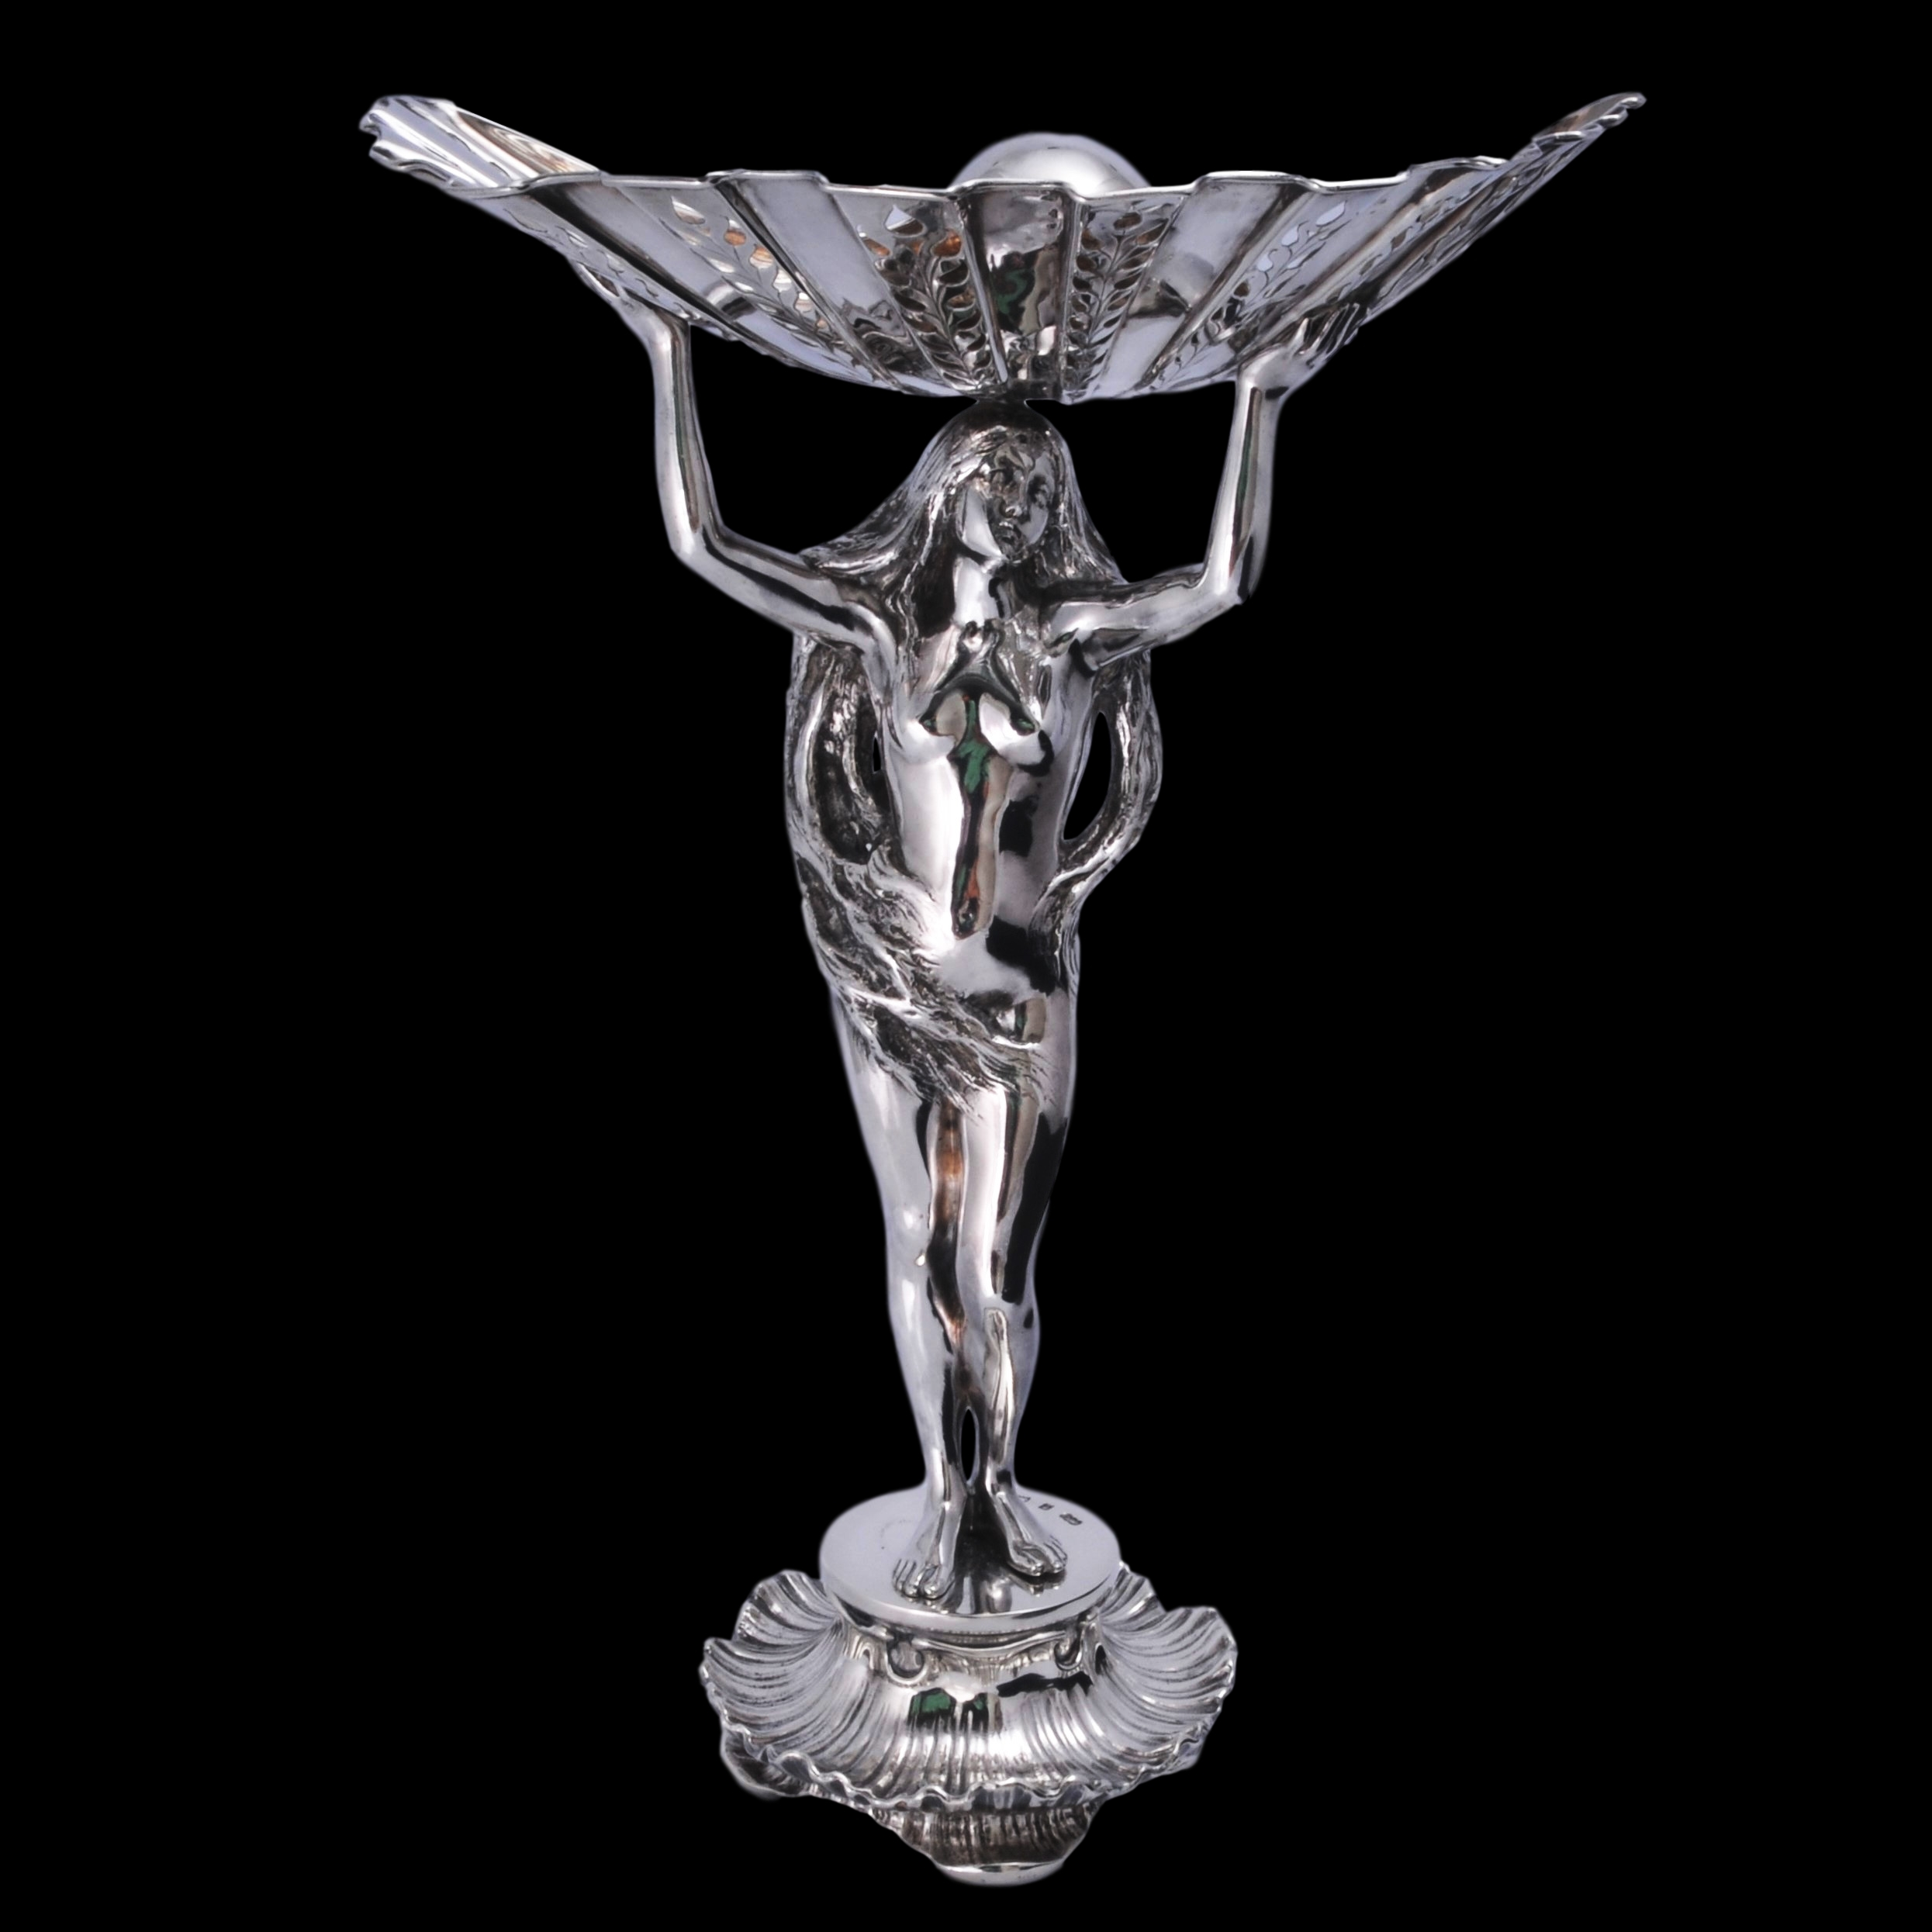 Elkington birth of venus silver sculpture